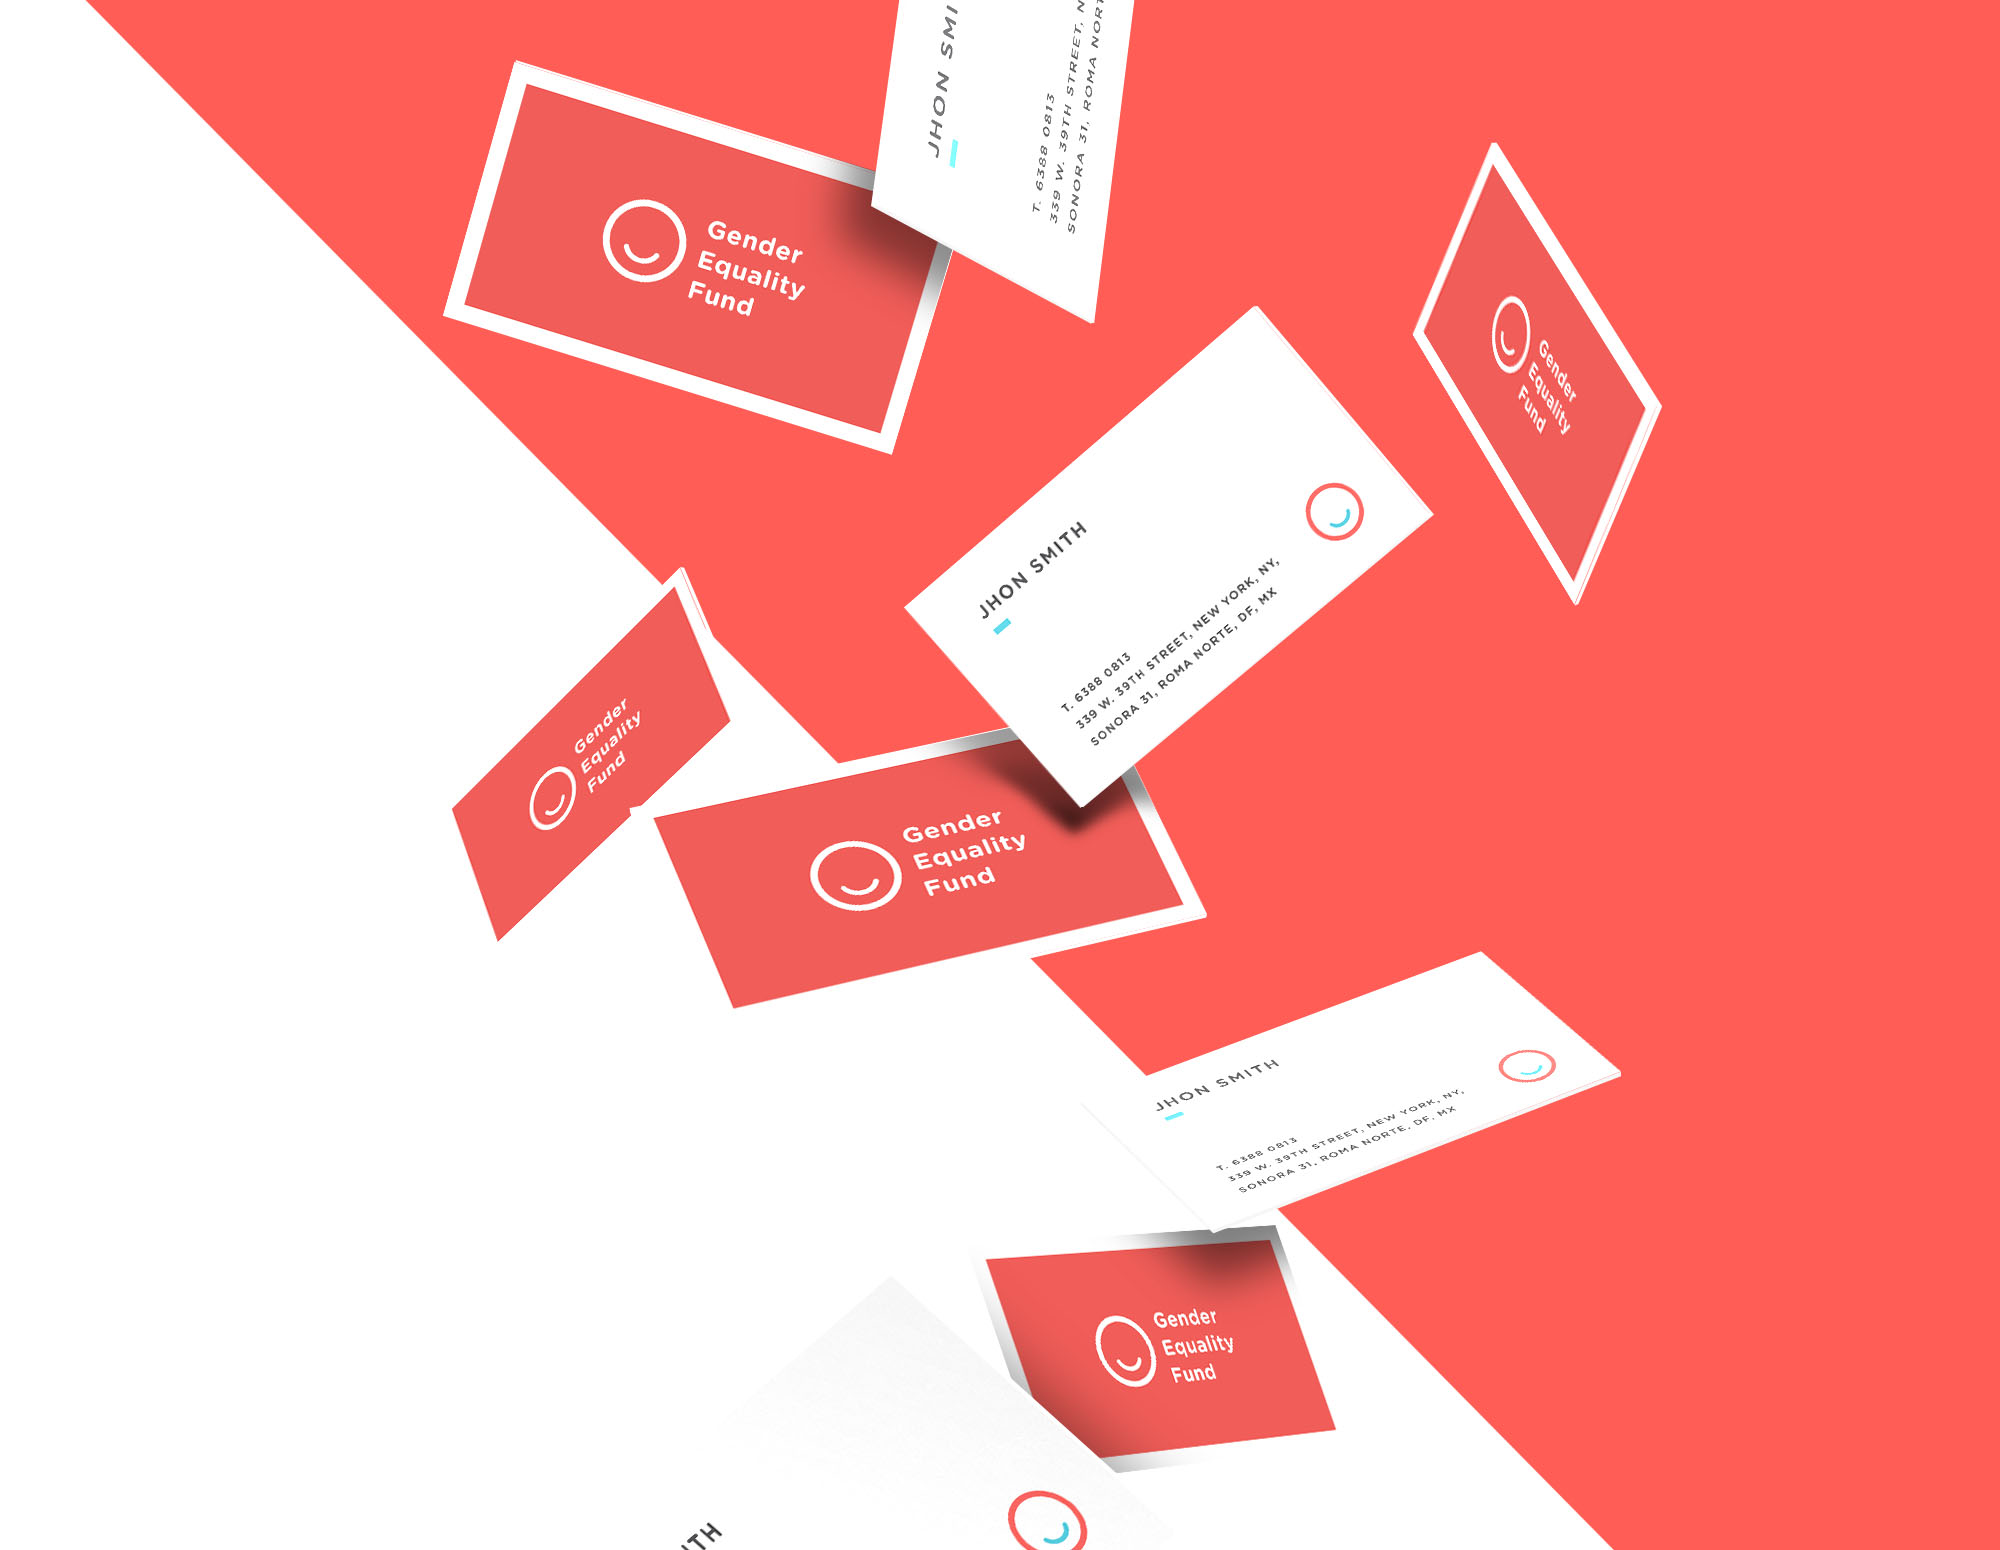 Graphic design for Gender Equality Fund business cards